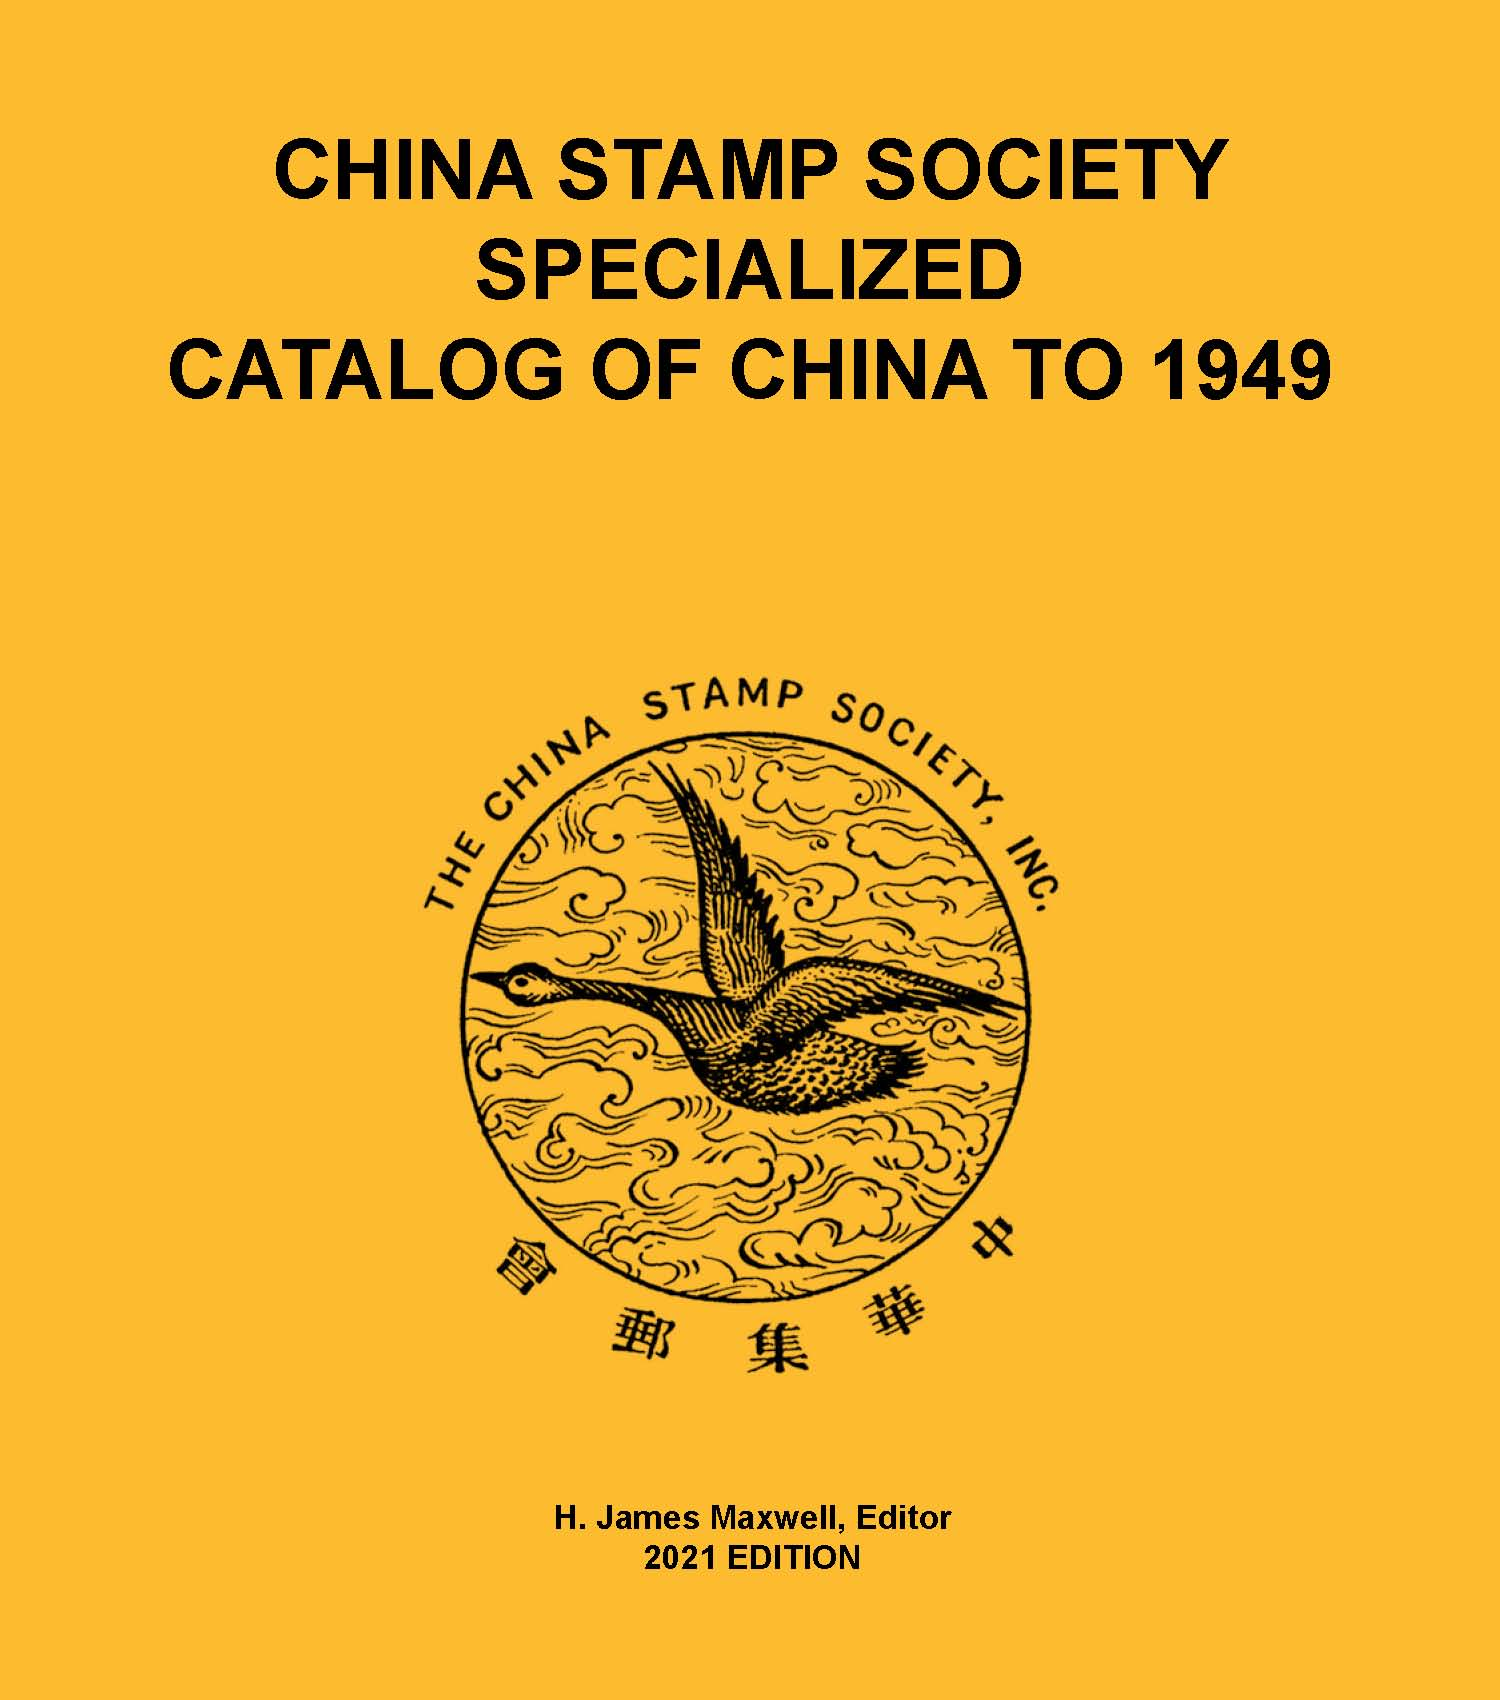 China Stamp Society, Inc